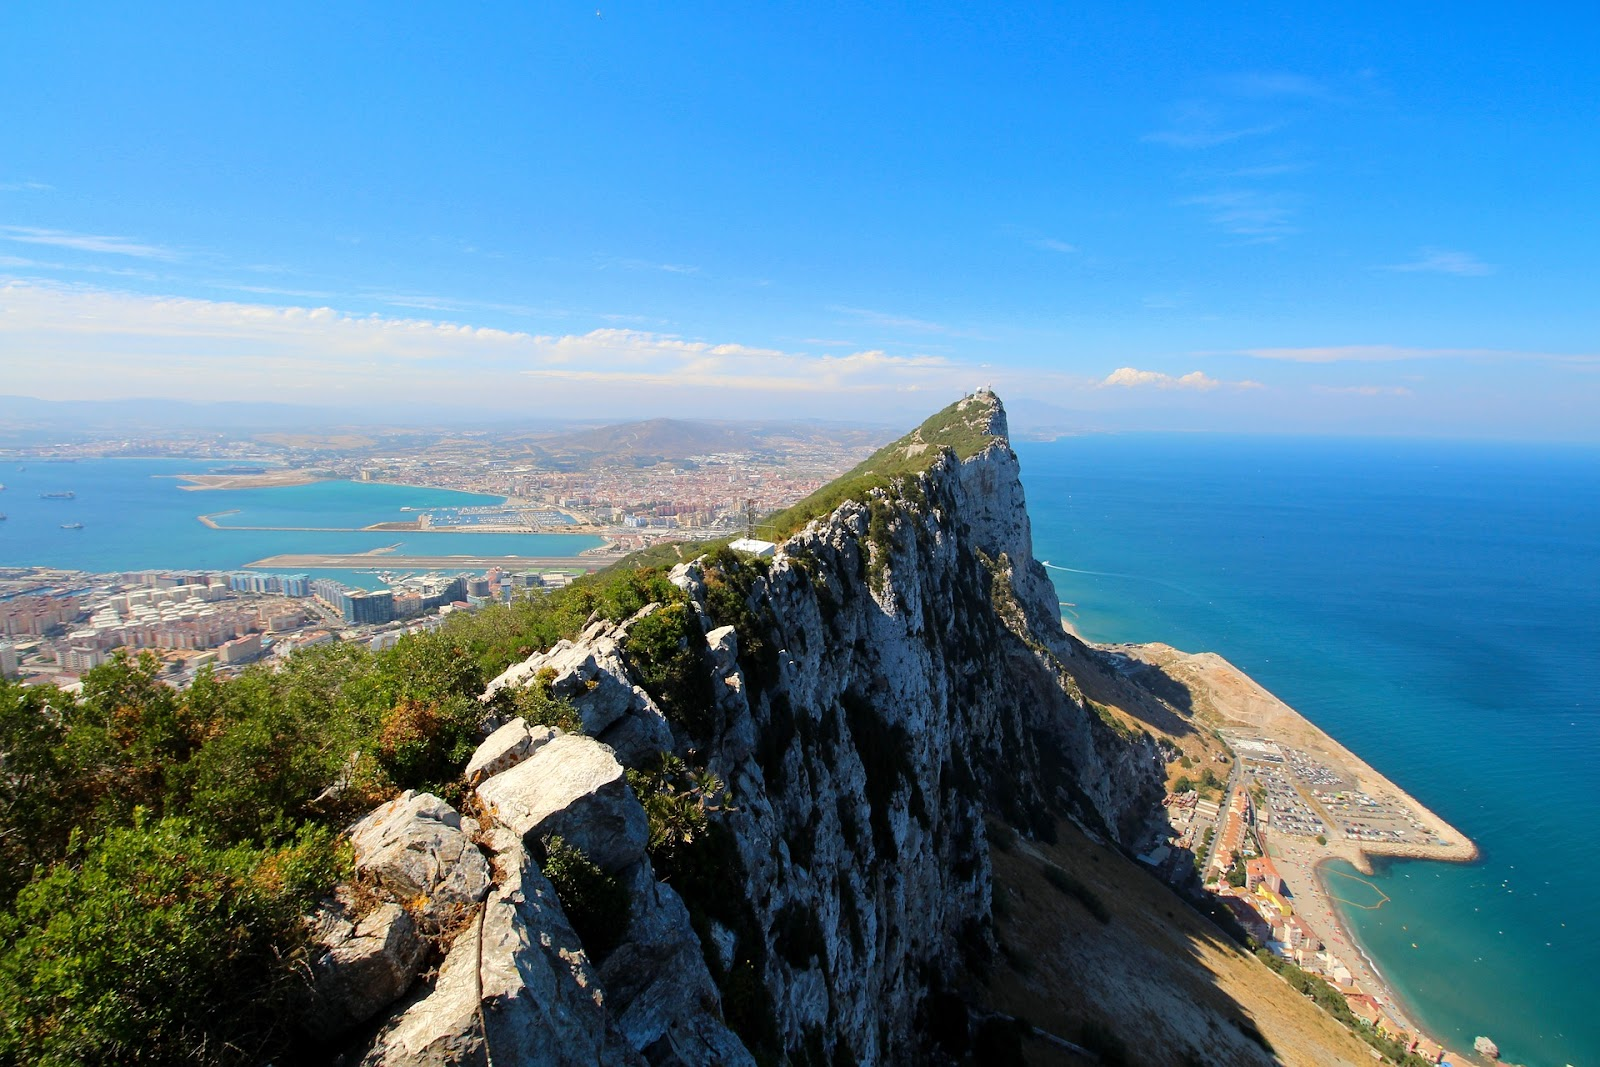 rock of gibraltar big mountain on small island city in background sunny day calm blue sea